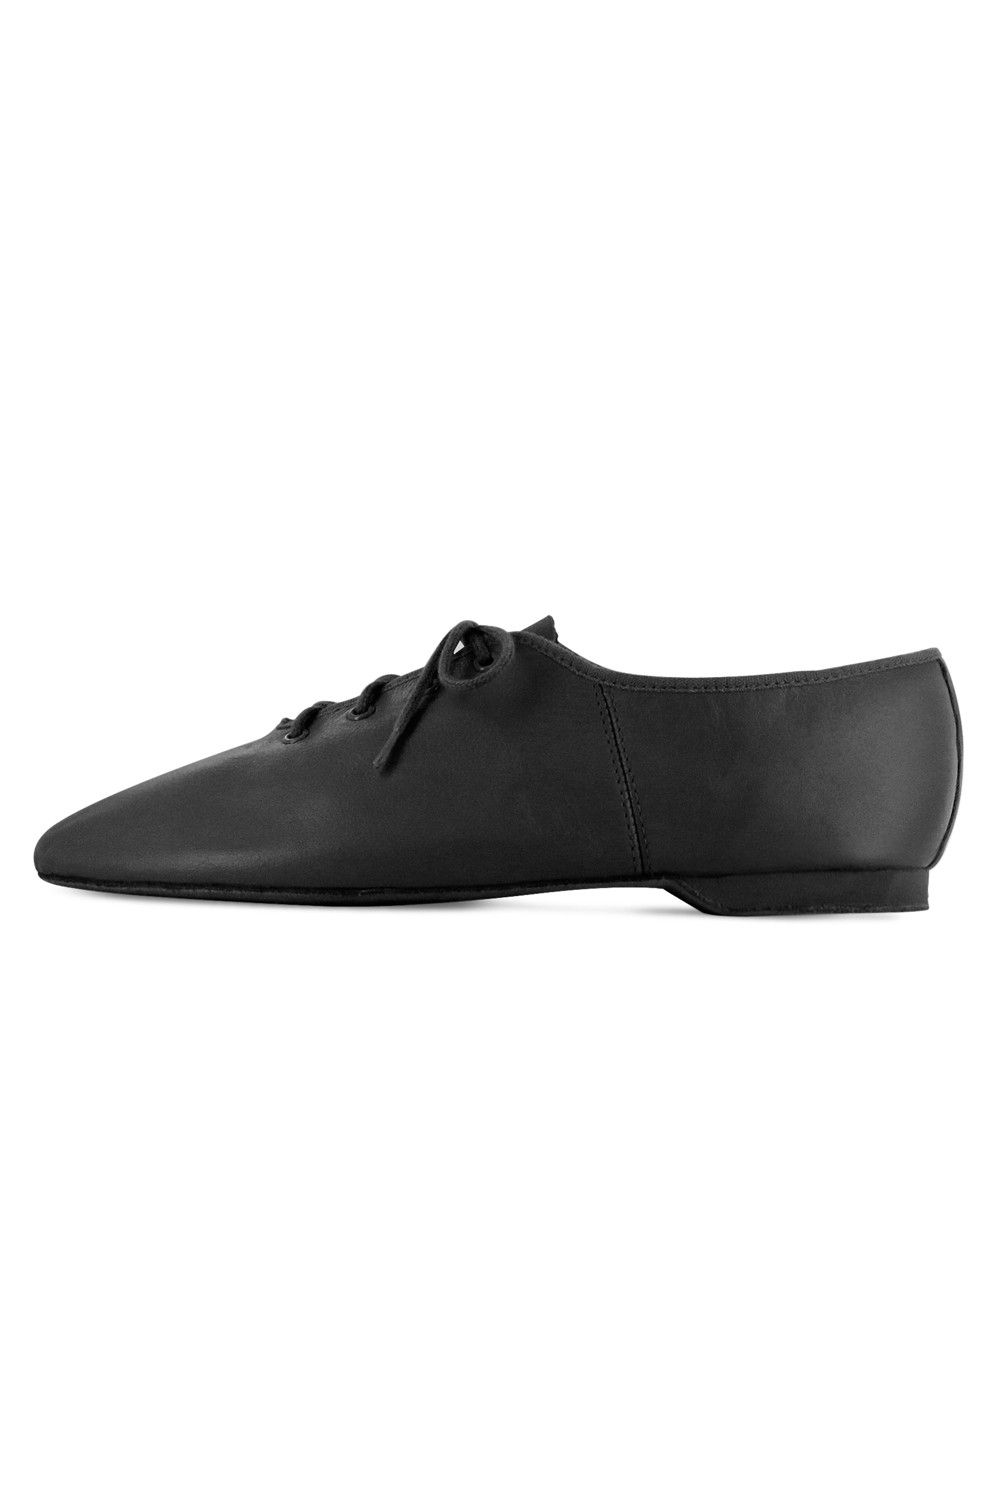 Essential Jazz Women's Jazz Shoes